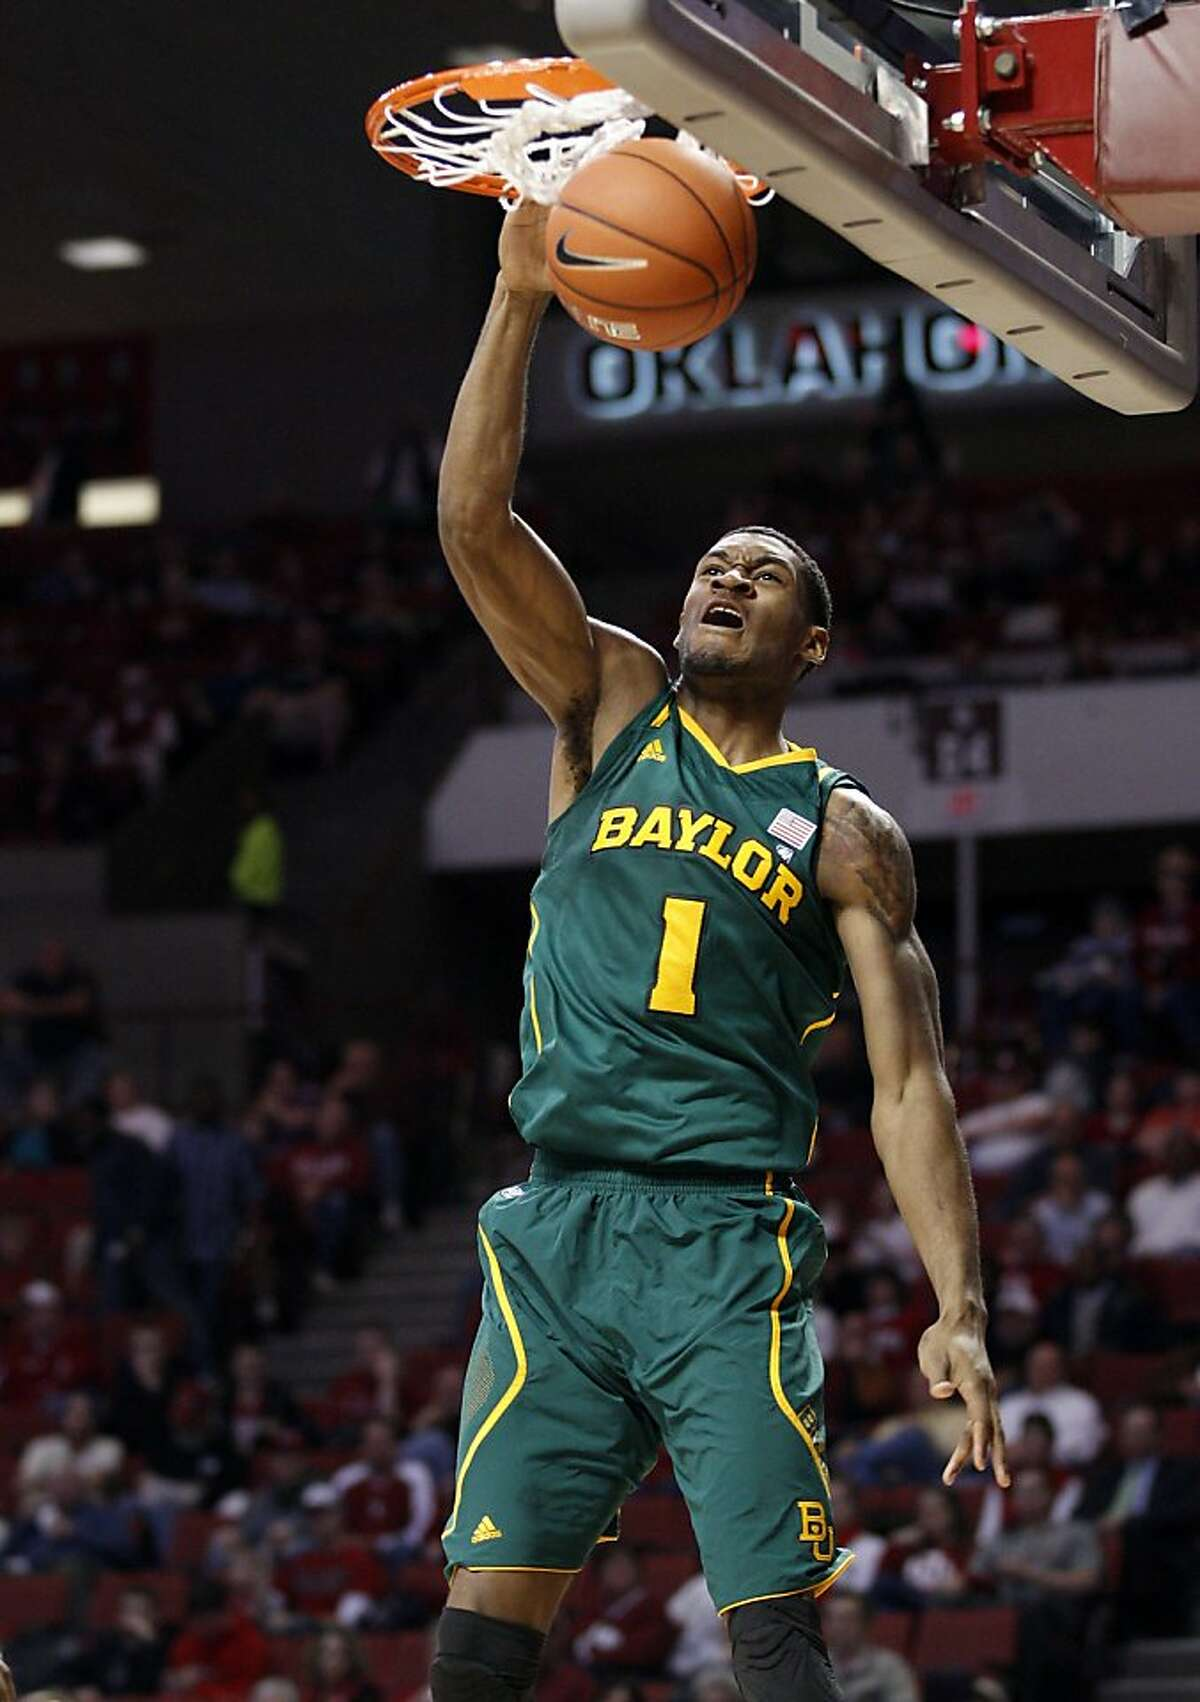 This Jan. 24, 2012 file photo shows Baylor forward Perry Jones III dunking against Oklahoma in the first half of an NCAA college basketball game in Norman, Okla.. (AP Photo/Sue Ogrocki,File)